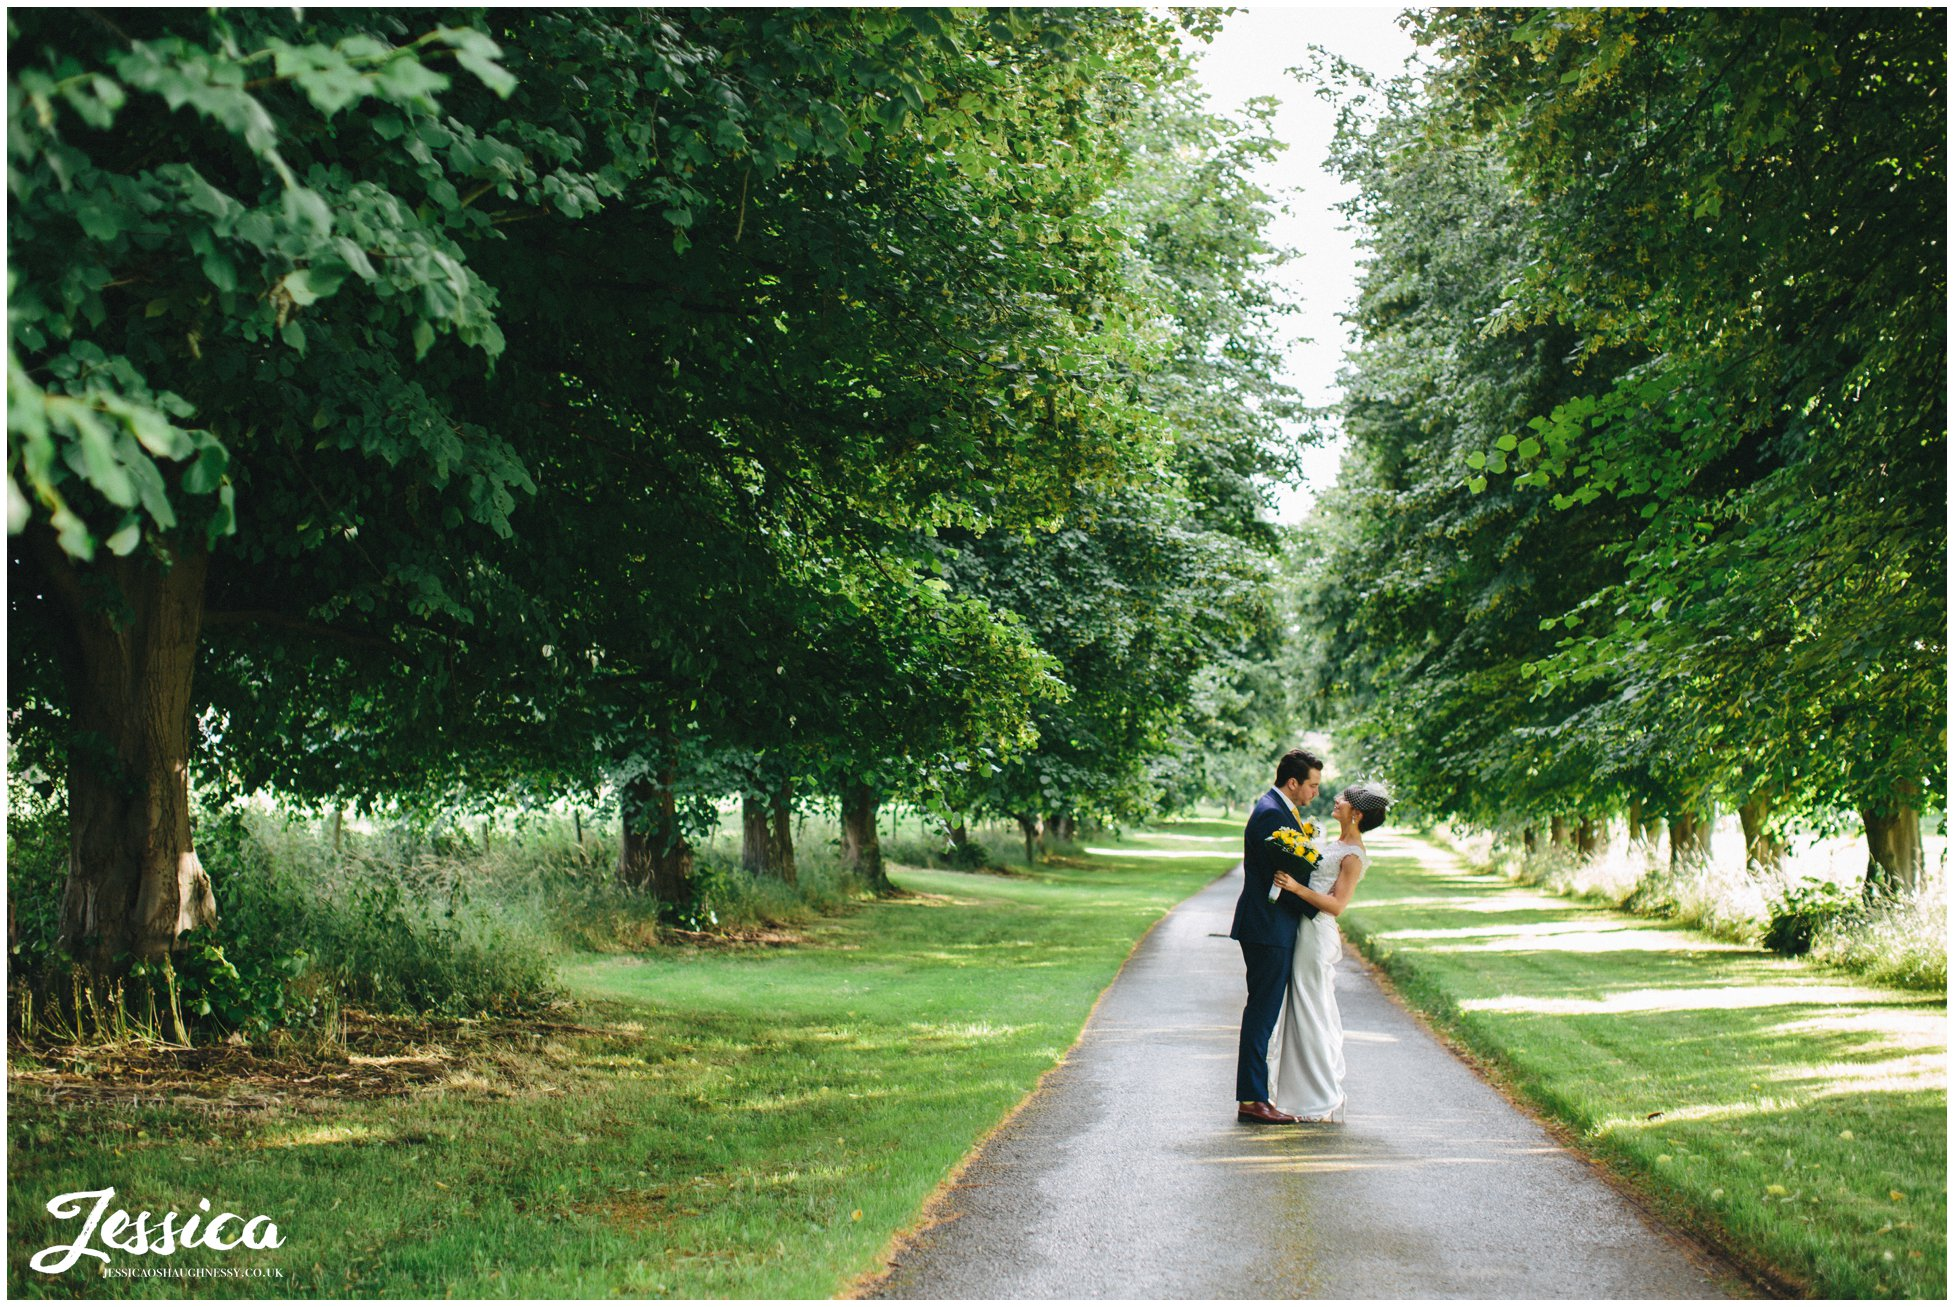 Bride & Groom standing between trees at Trafford Hall, Cheshire wedding photography